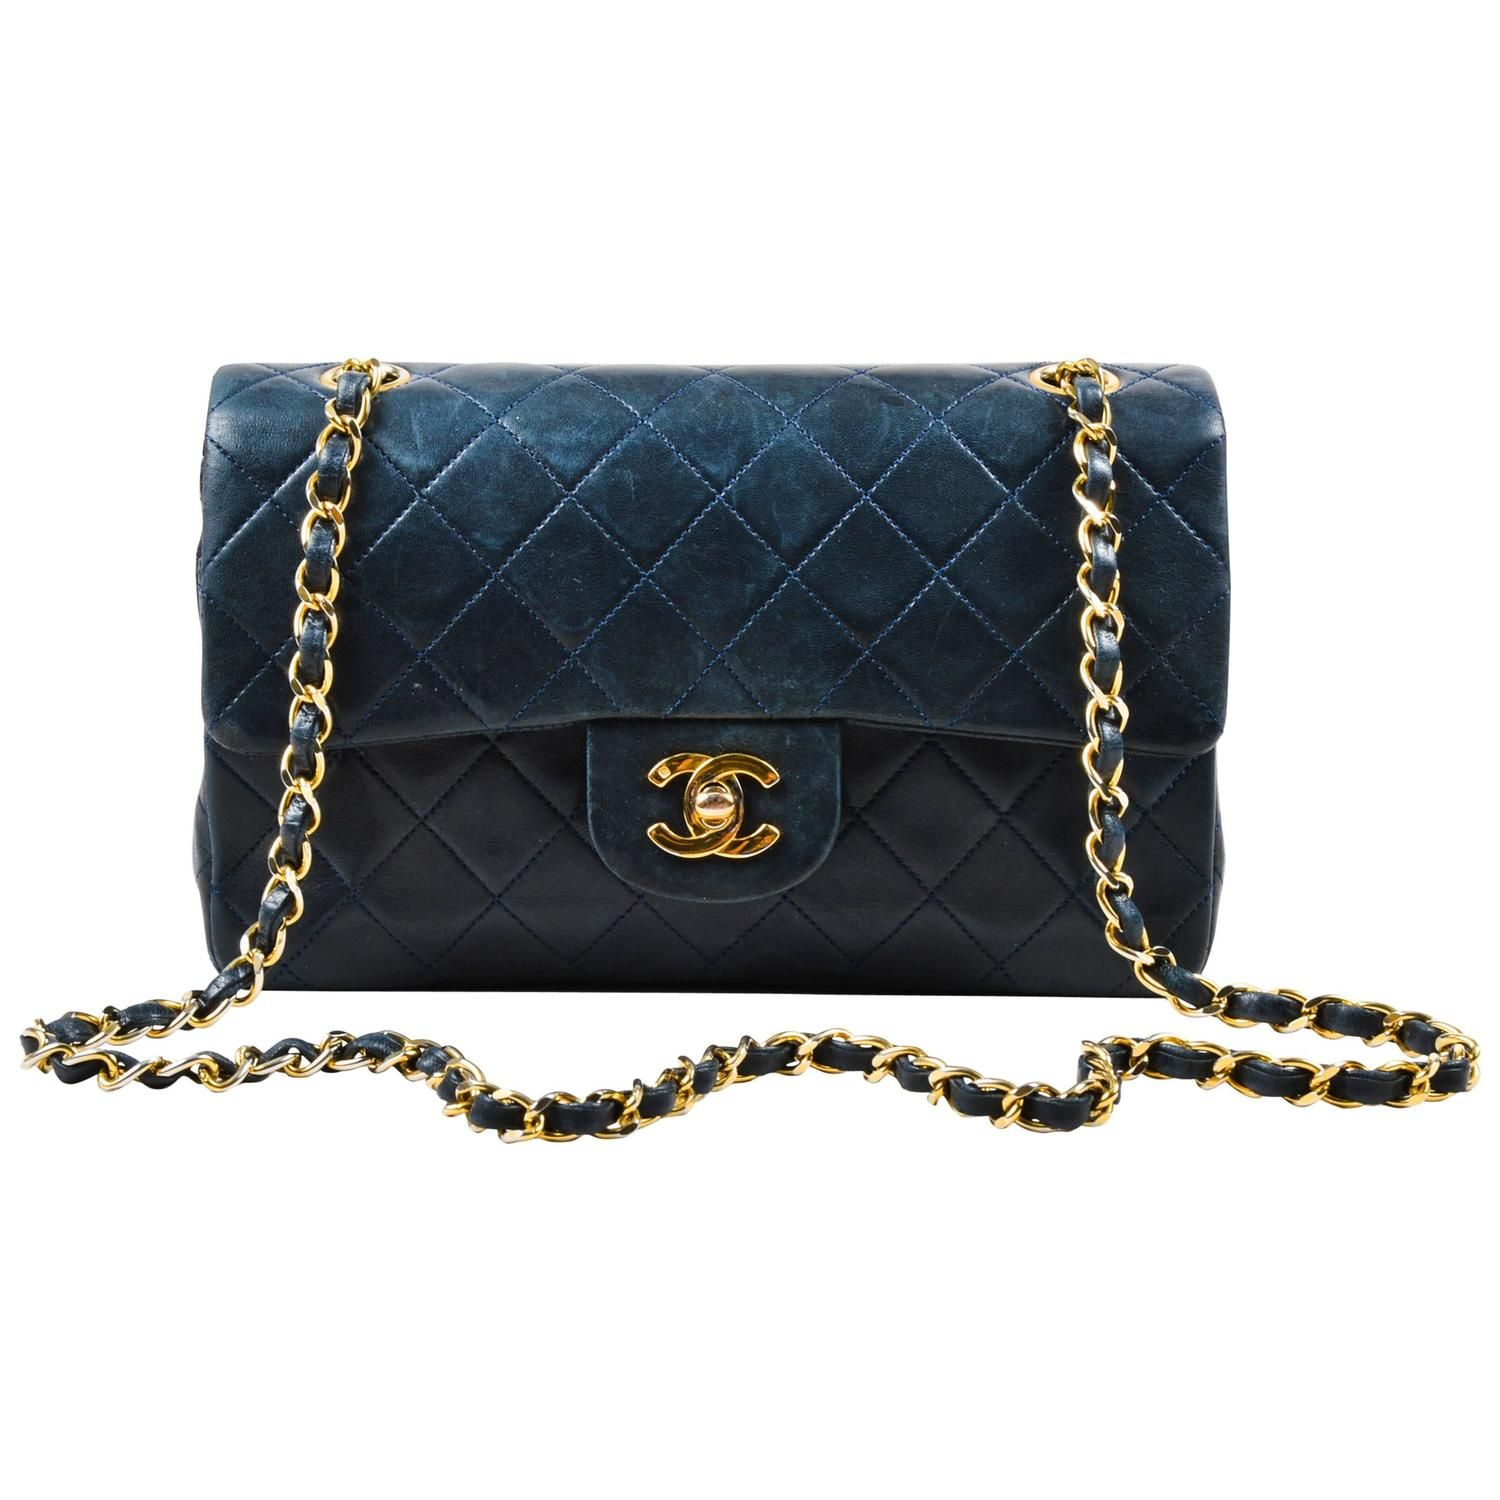 be3baaf8fb8d Vintage Chanel Navy Blue Gold Tone Chain Strap